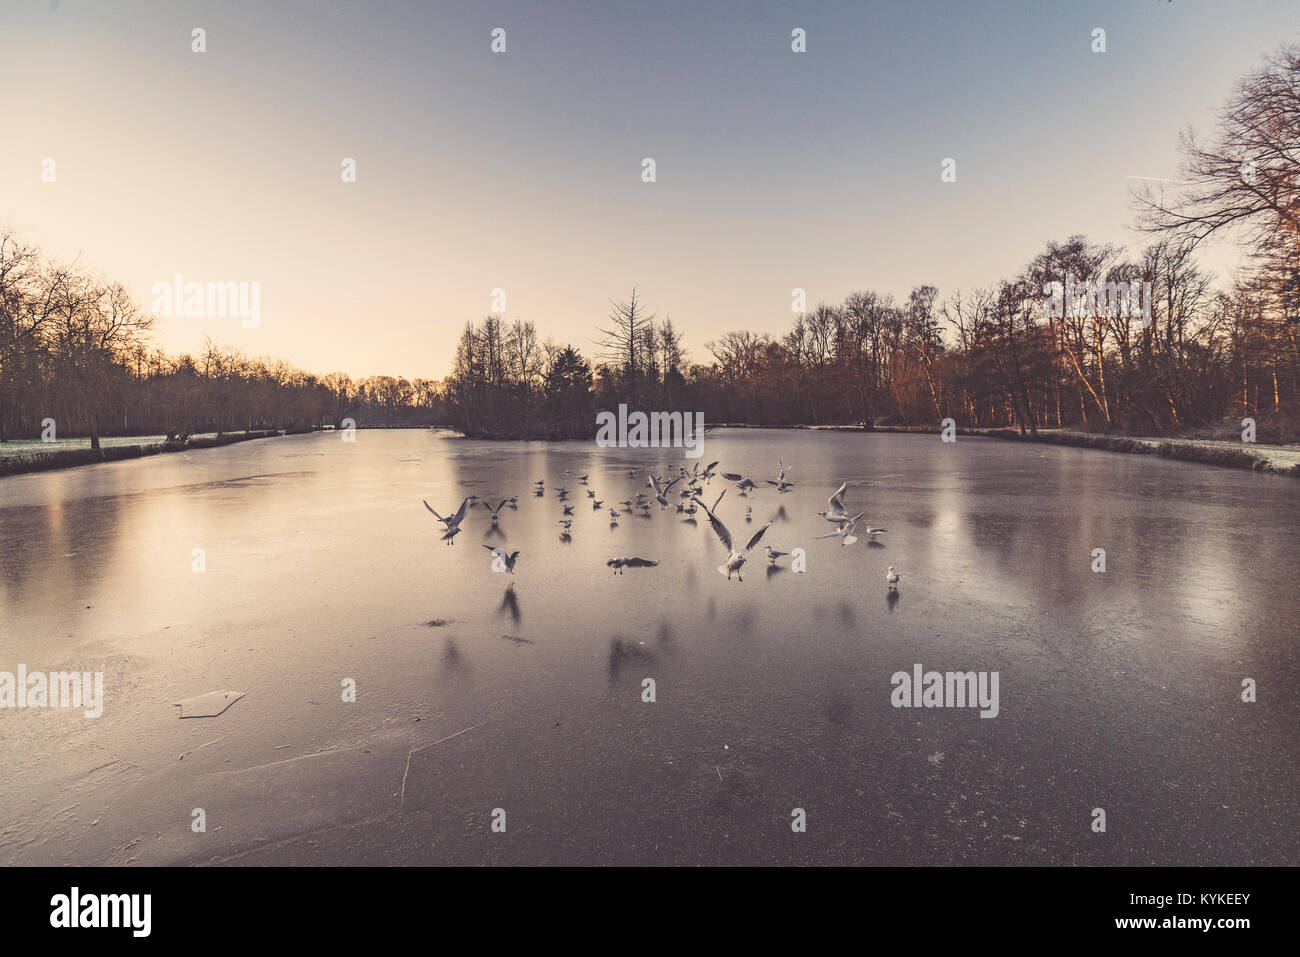 Gulls flying over a frozen lake in the winter in the early morning sunrise with ice on the water - Stock Image